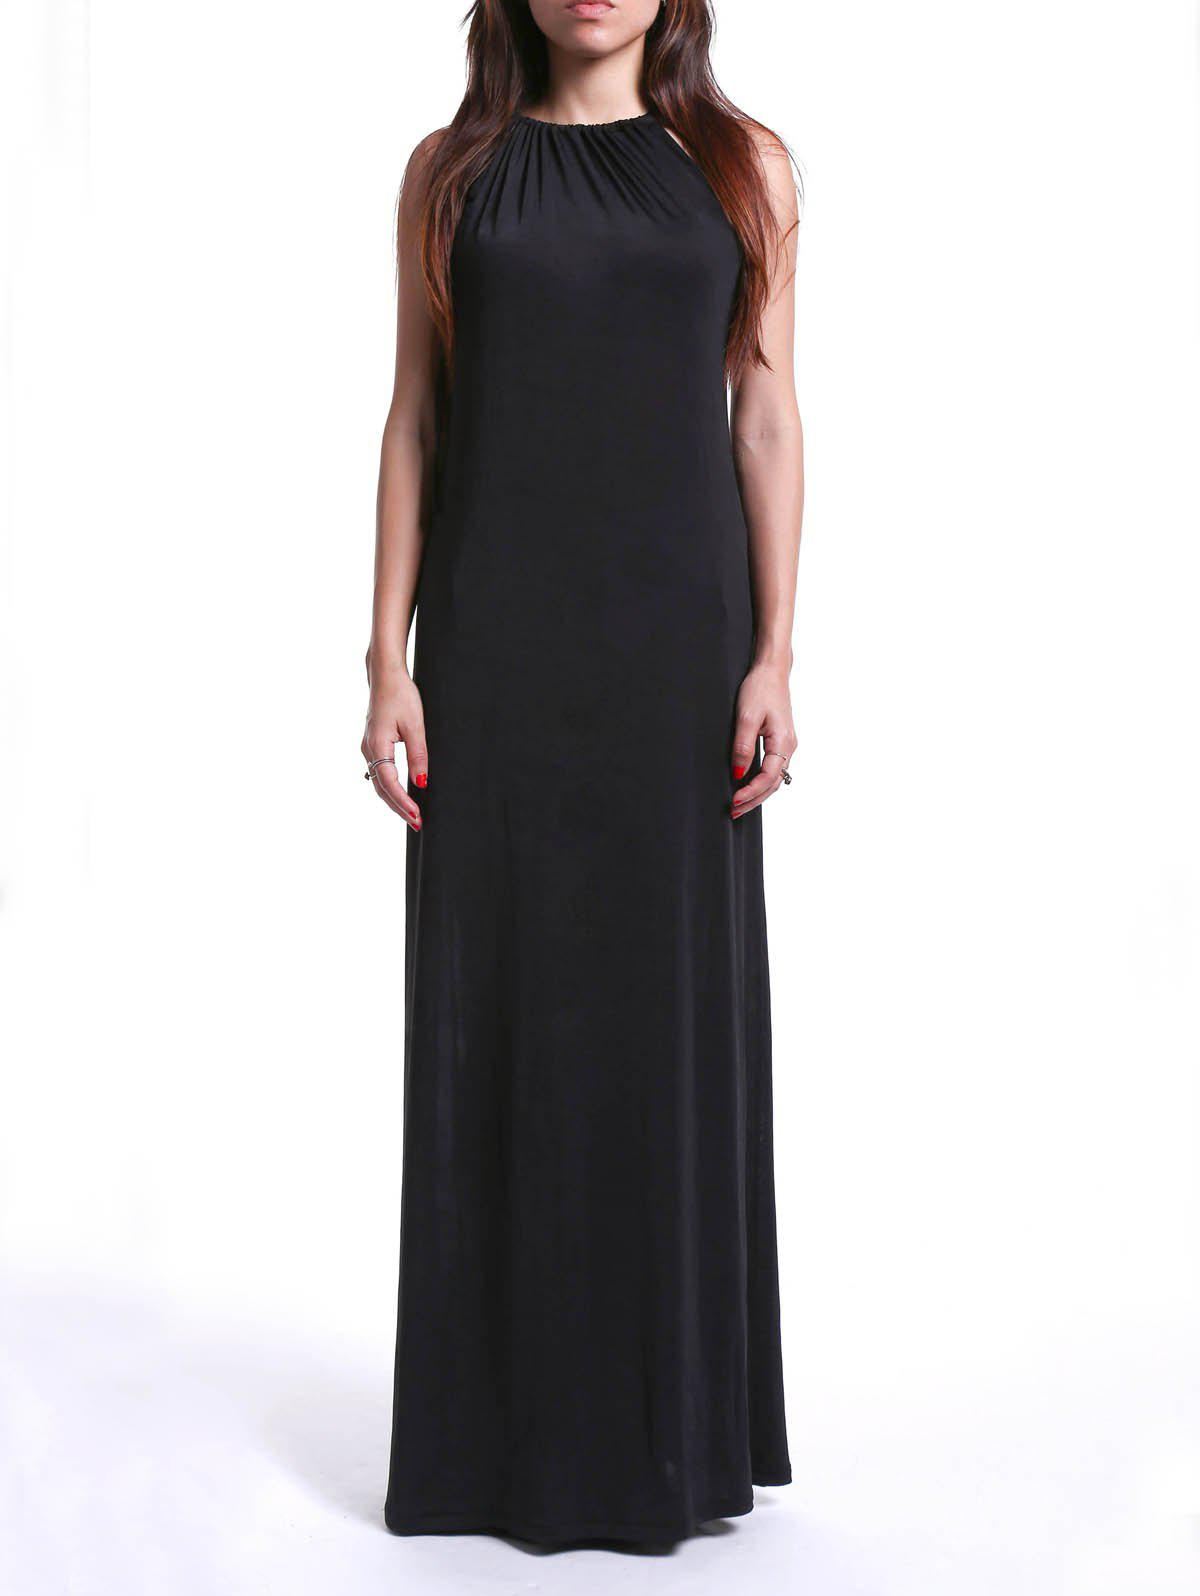 Trendy Women's Strappy Loose-Fitting Black Maxi Dress trendy strappy black loose fitting maxi dress for women